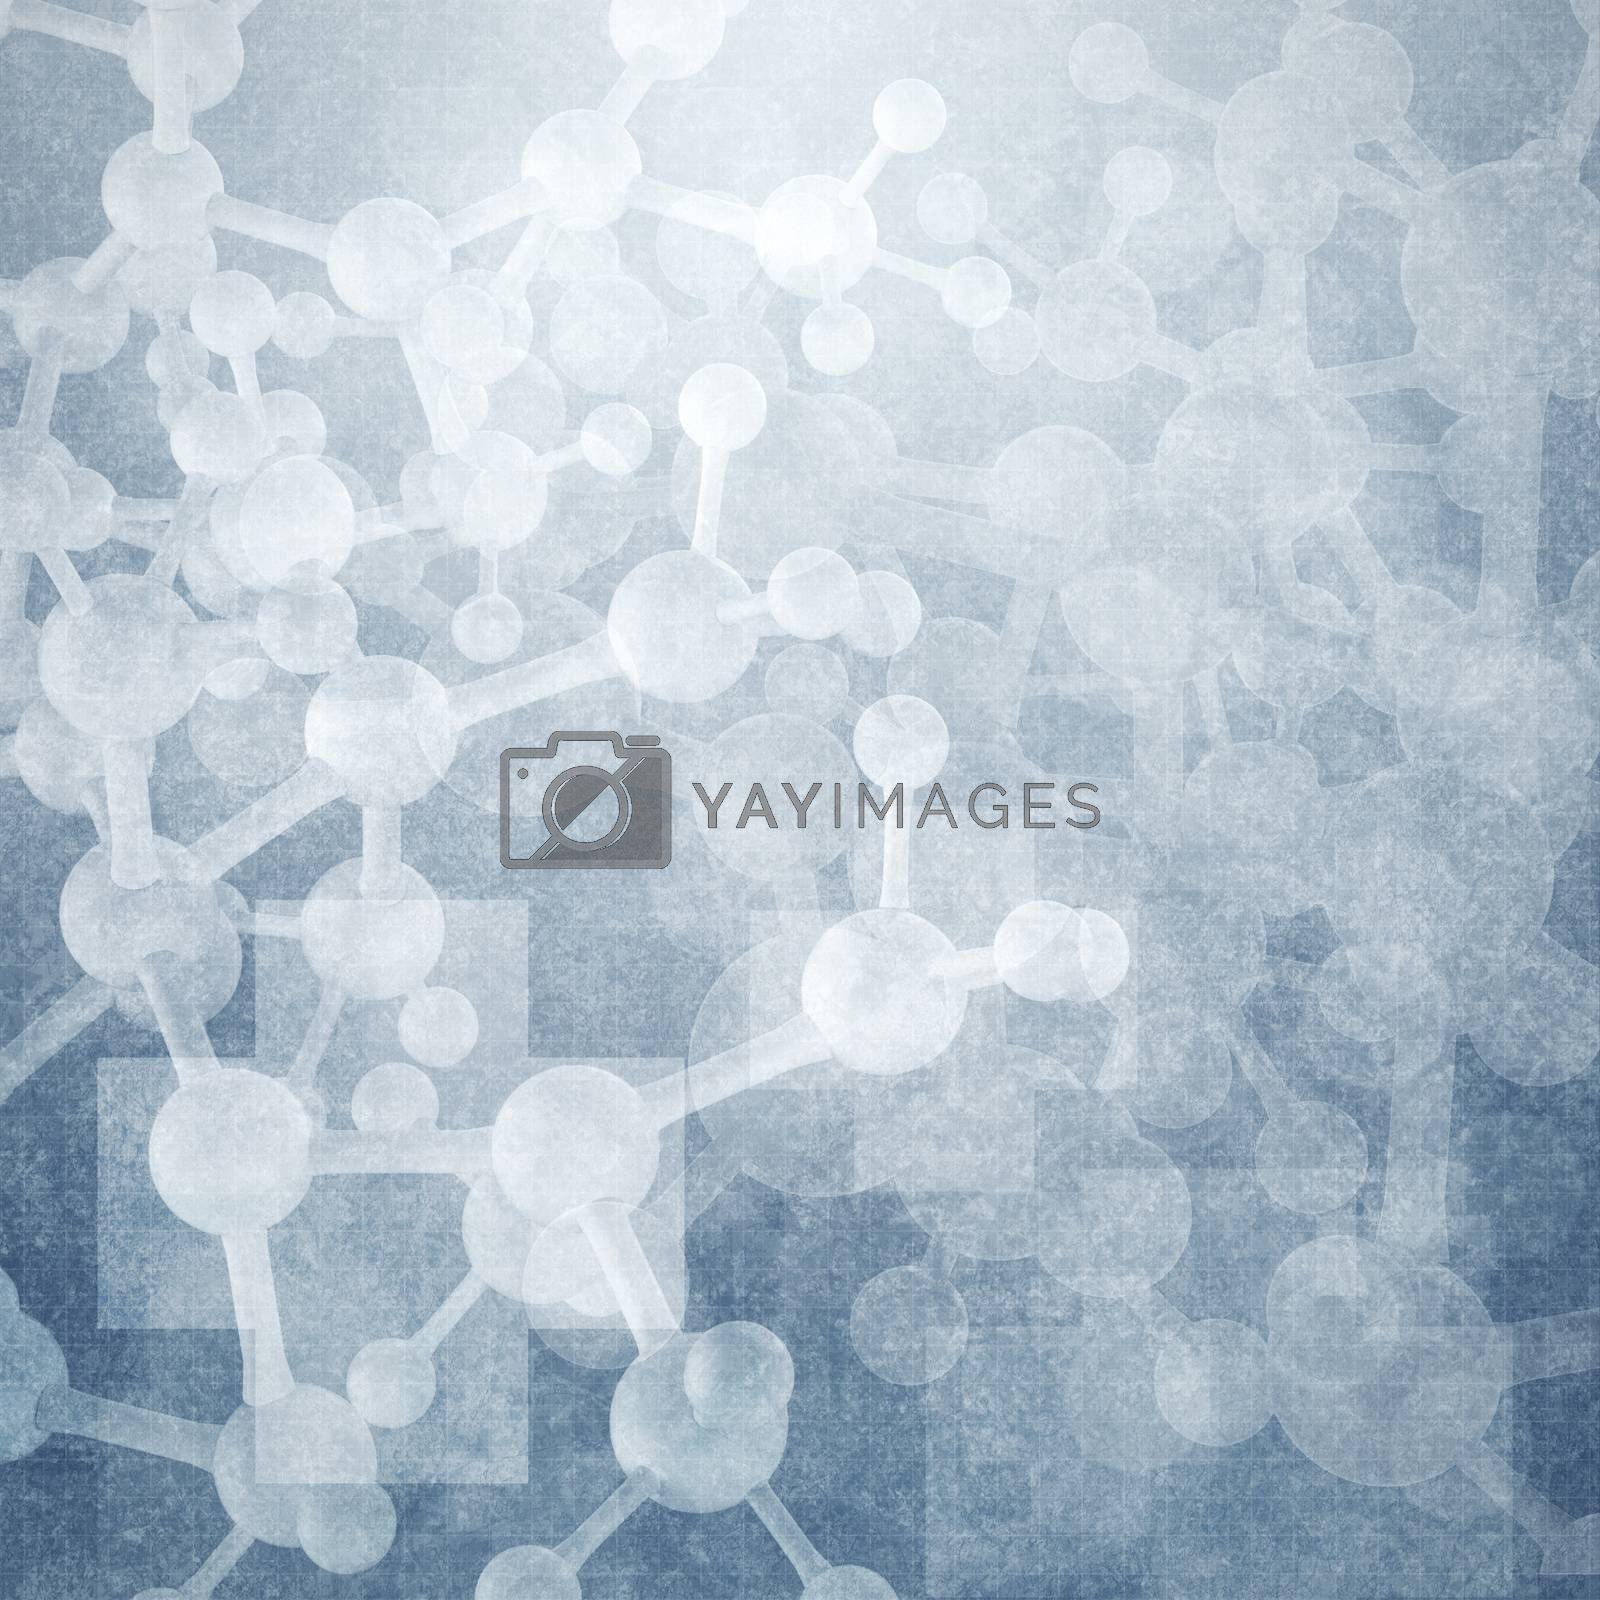 Royalty free image of Abstract  medical concept background by everythingpossible